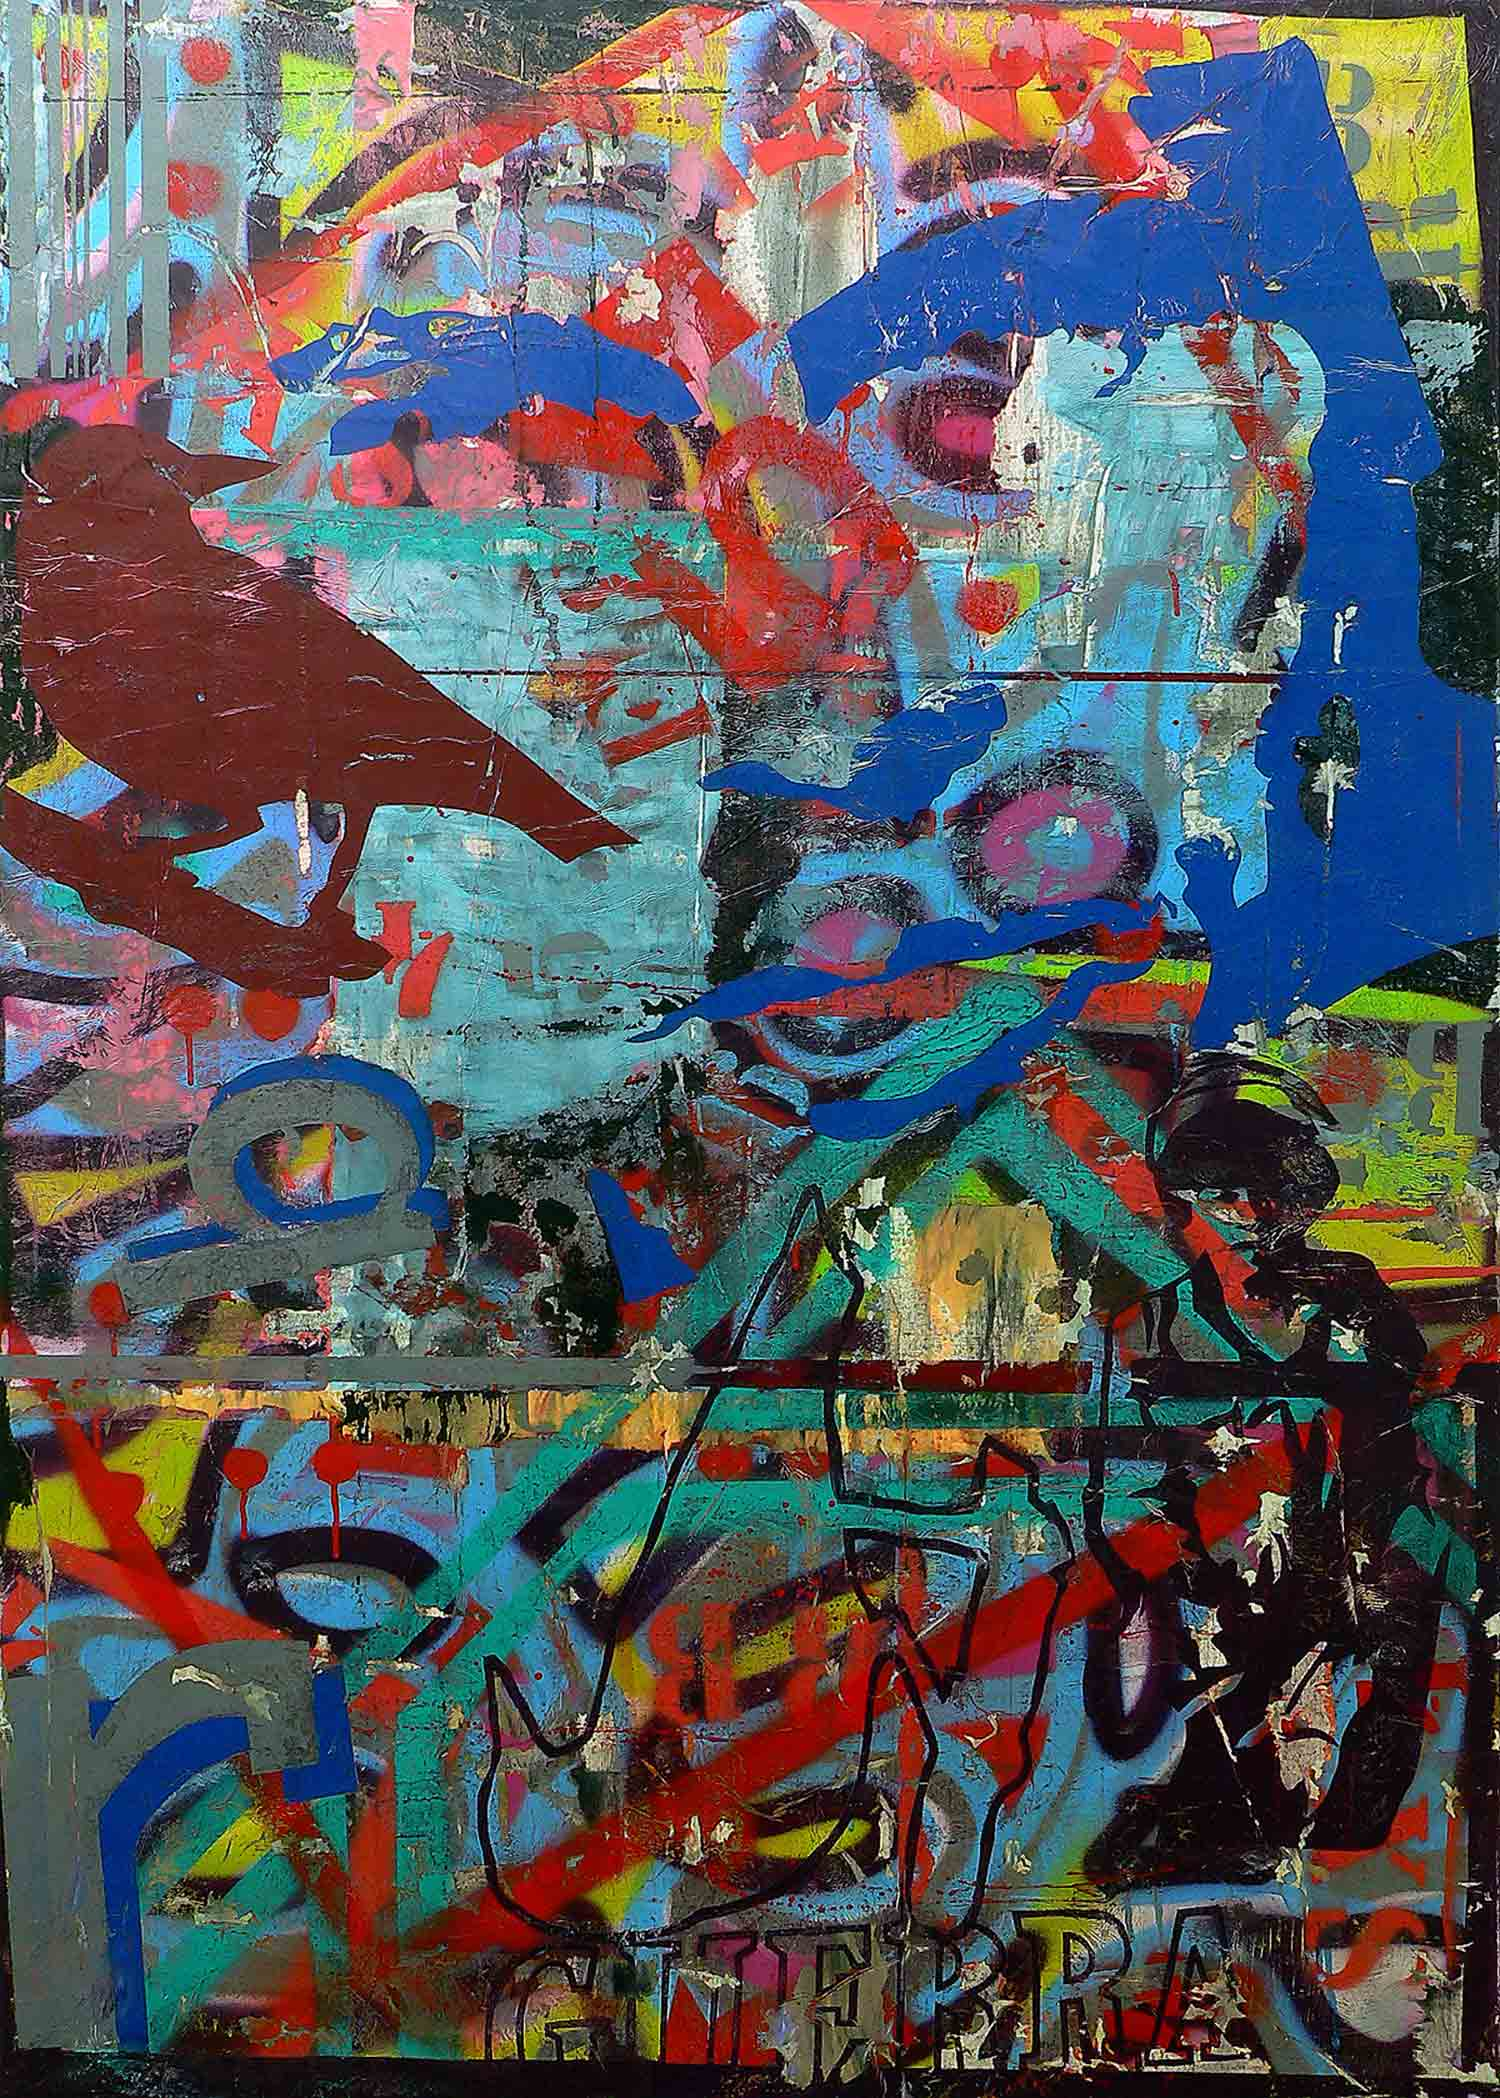 guerra - 168 x 120 cm - acrylic, spray paint and collage on canvas - 2010